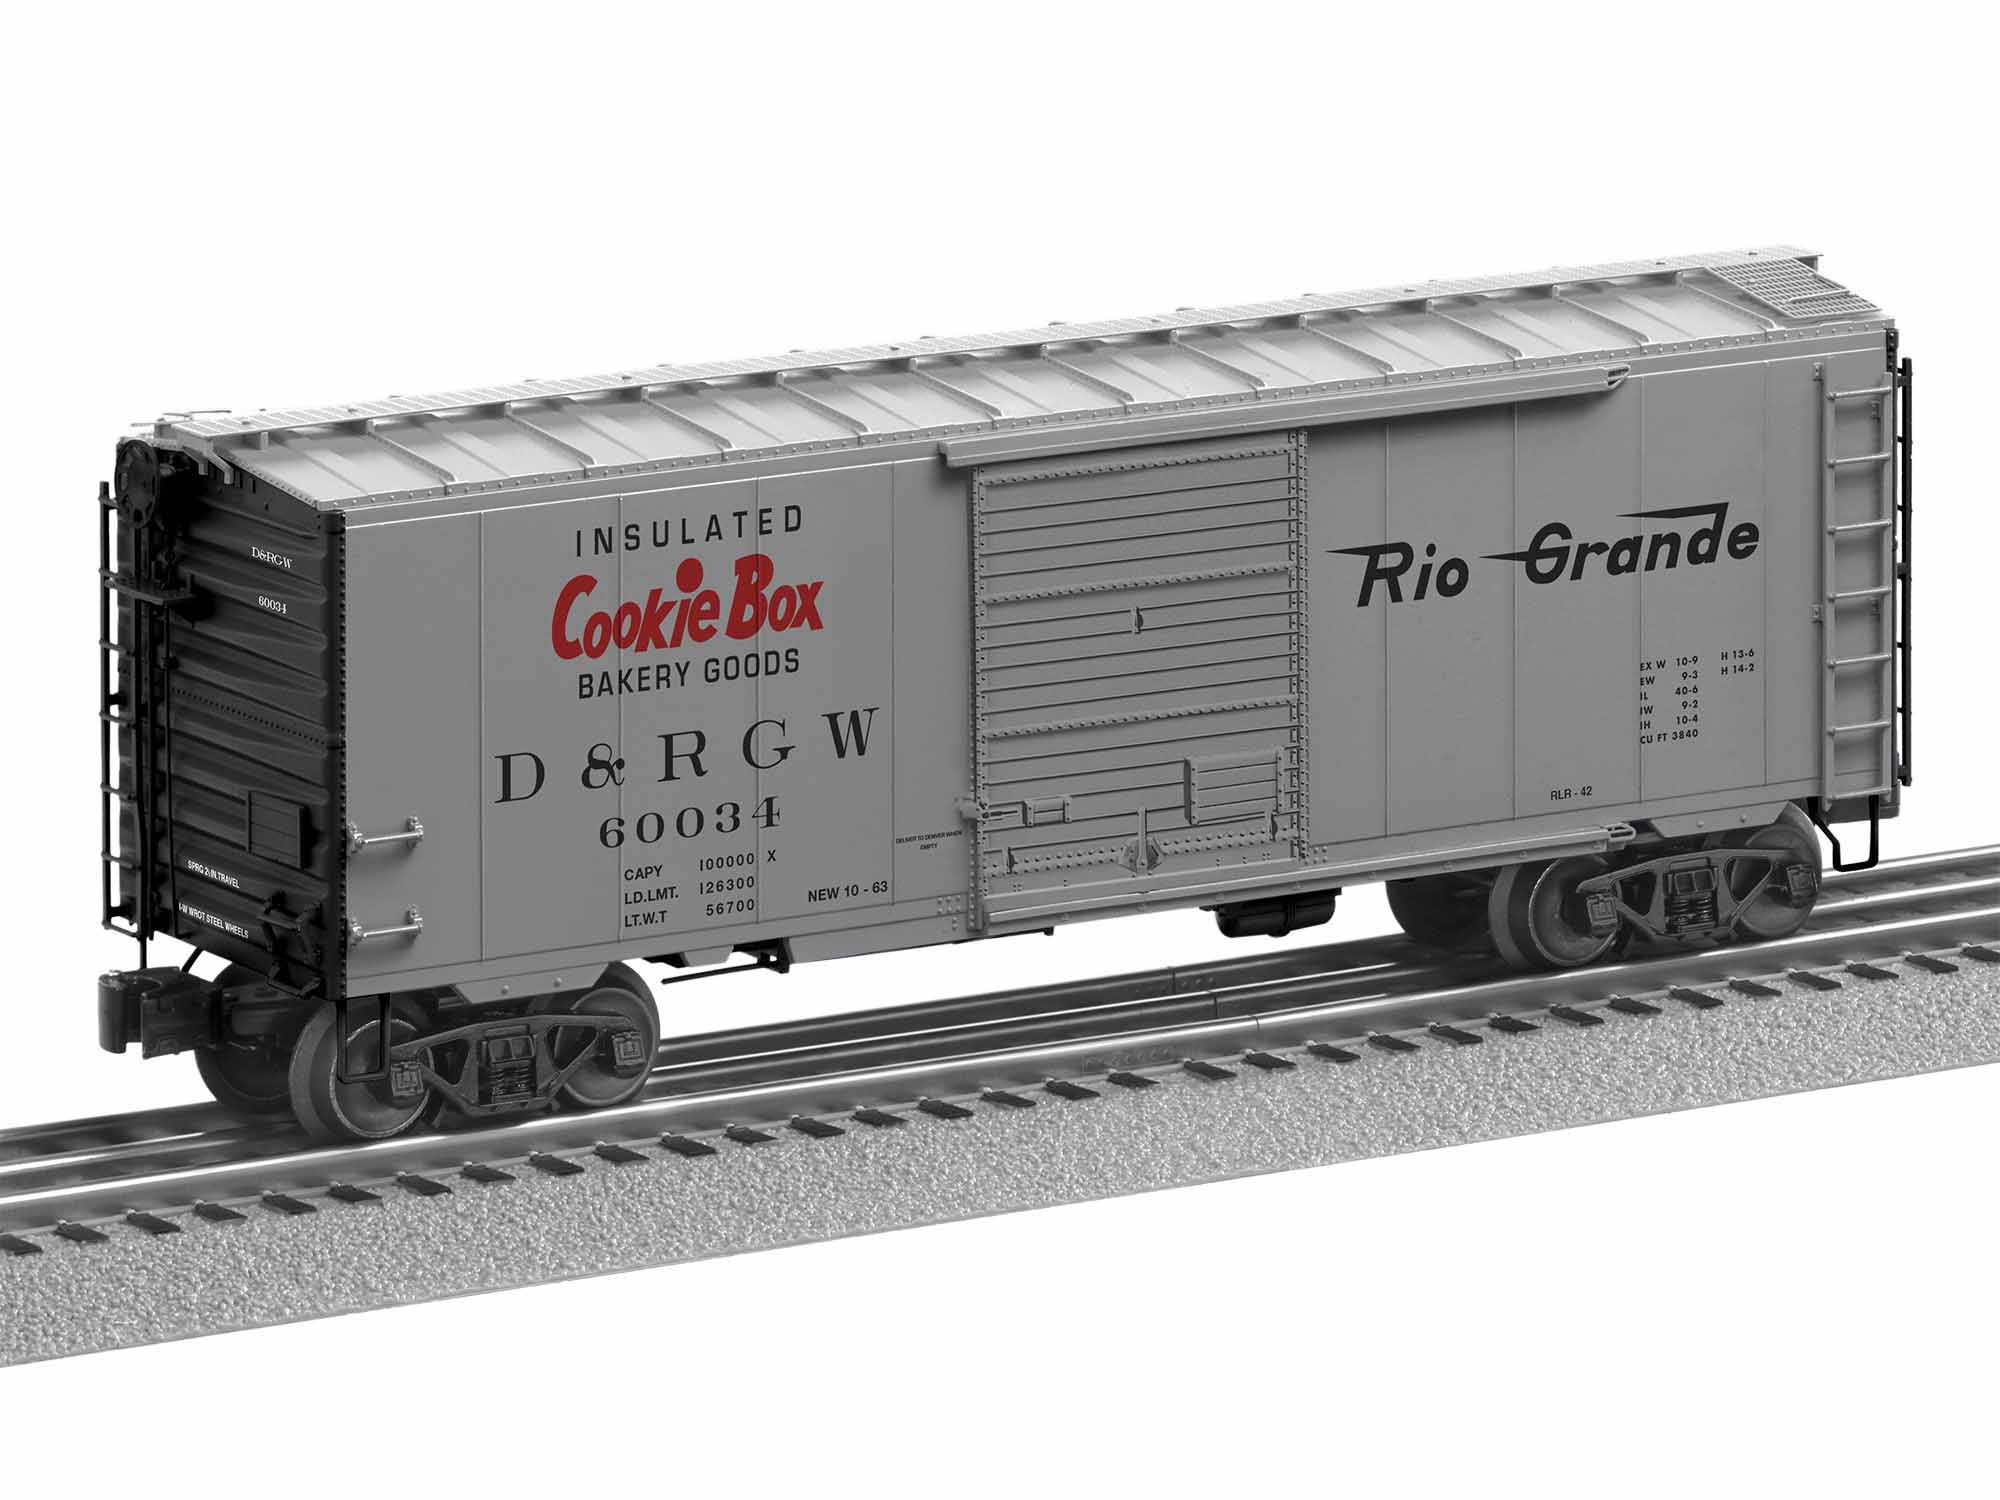 LNL1926650 Lionel O PS-1 Box w/Freight Sound,D&RGW/Cookie Box #60034